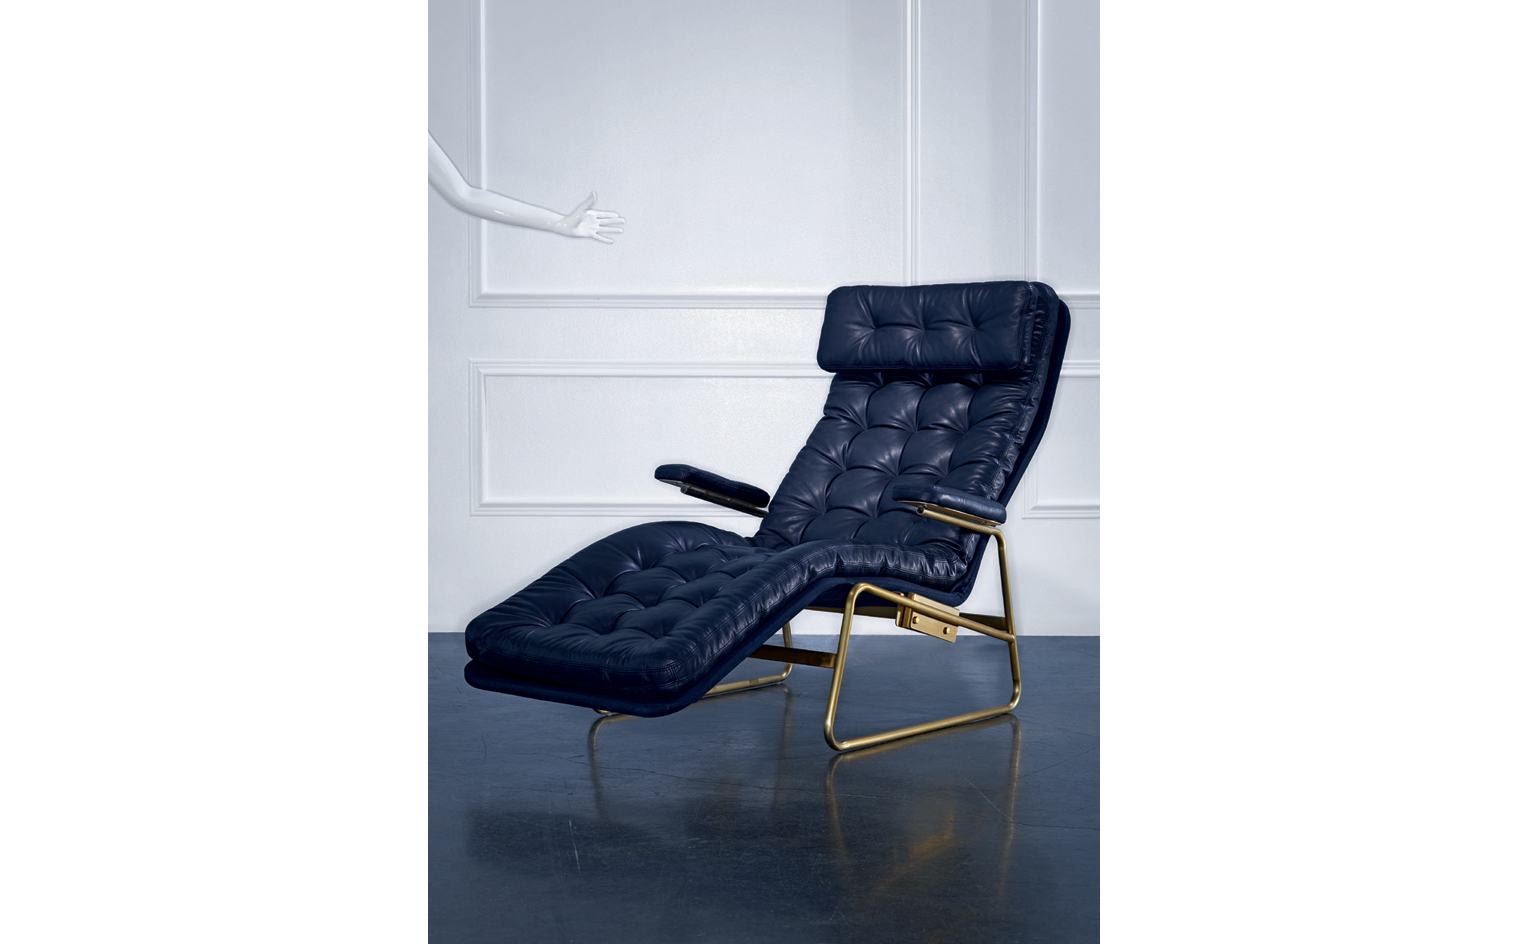 Deane tufted chaise. Photography François Dischinger